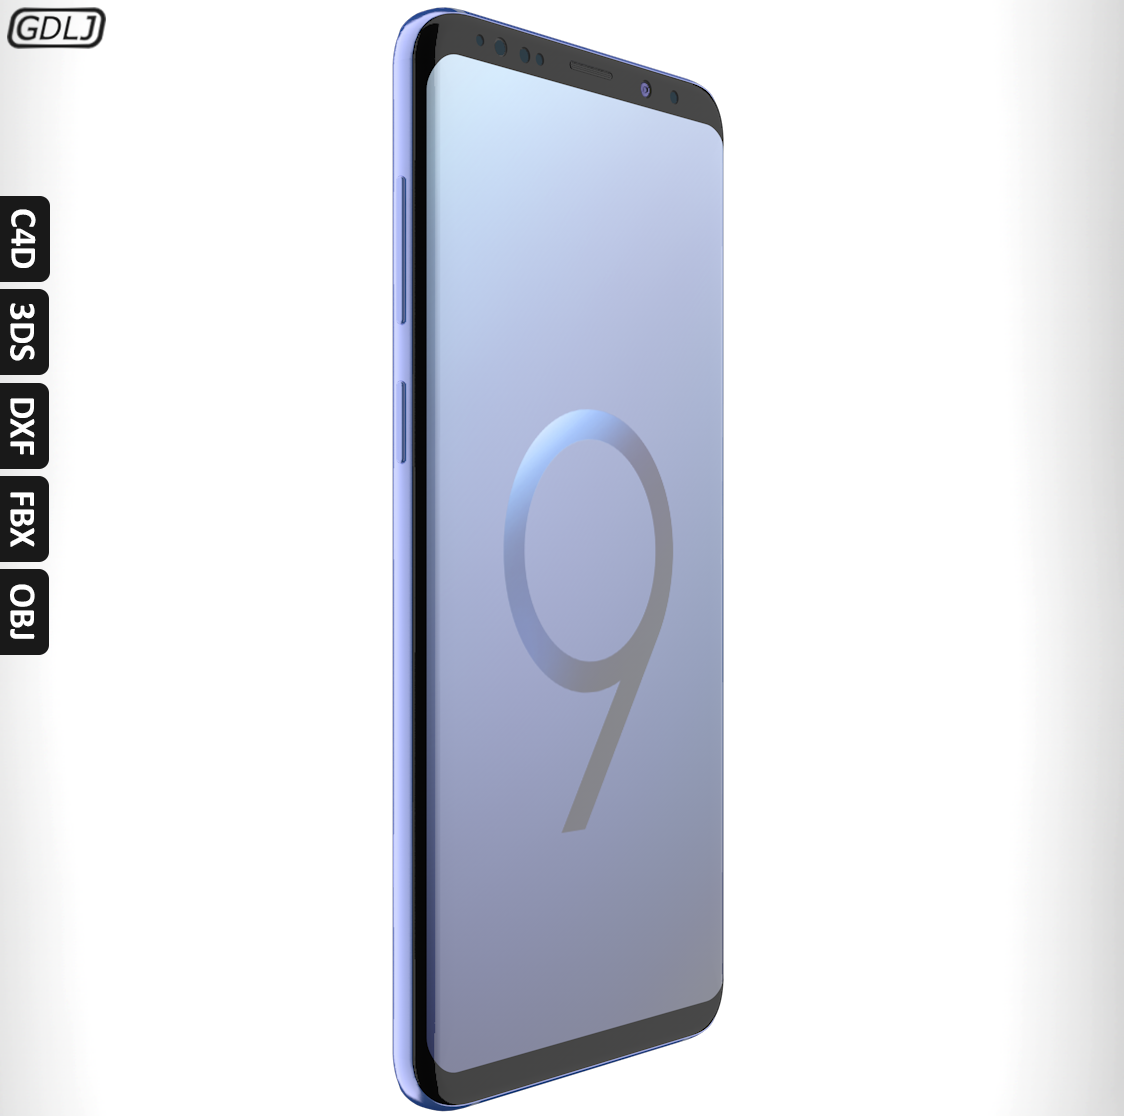 How To Get Rid Of Ads On Samsung S9 Plus